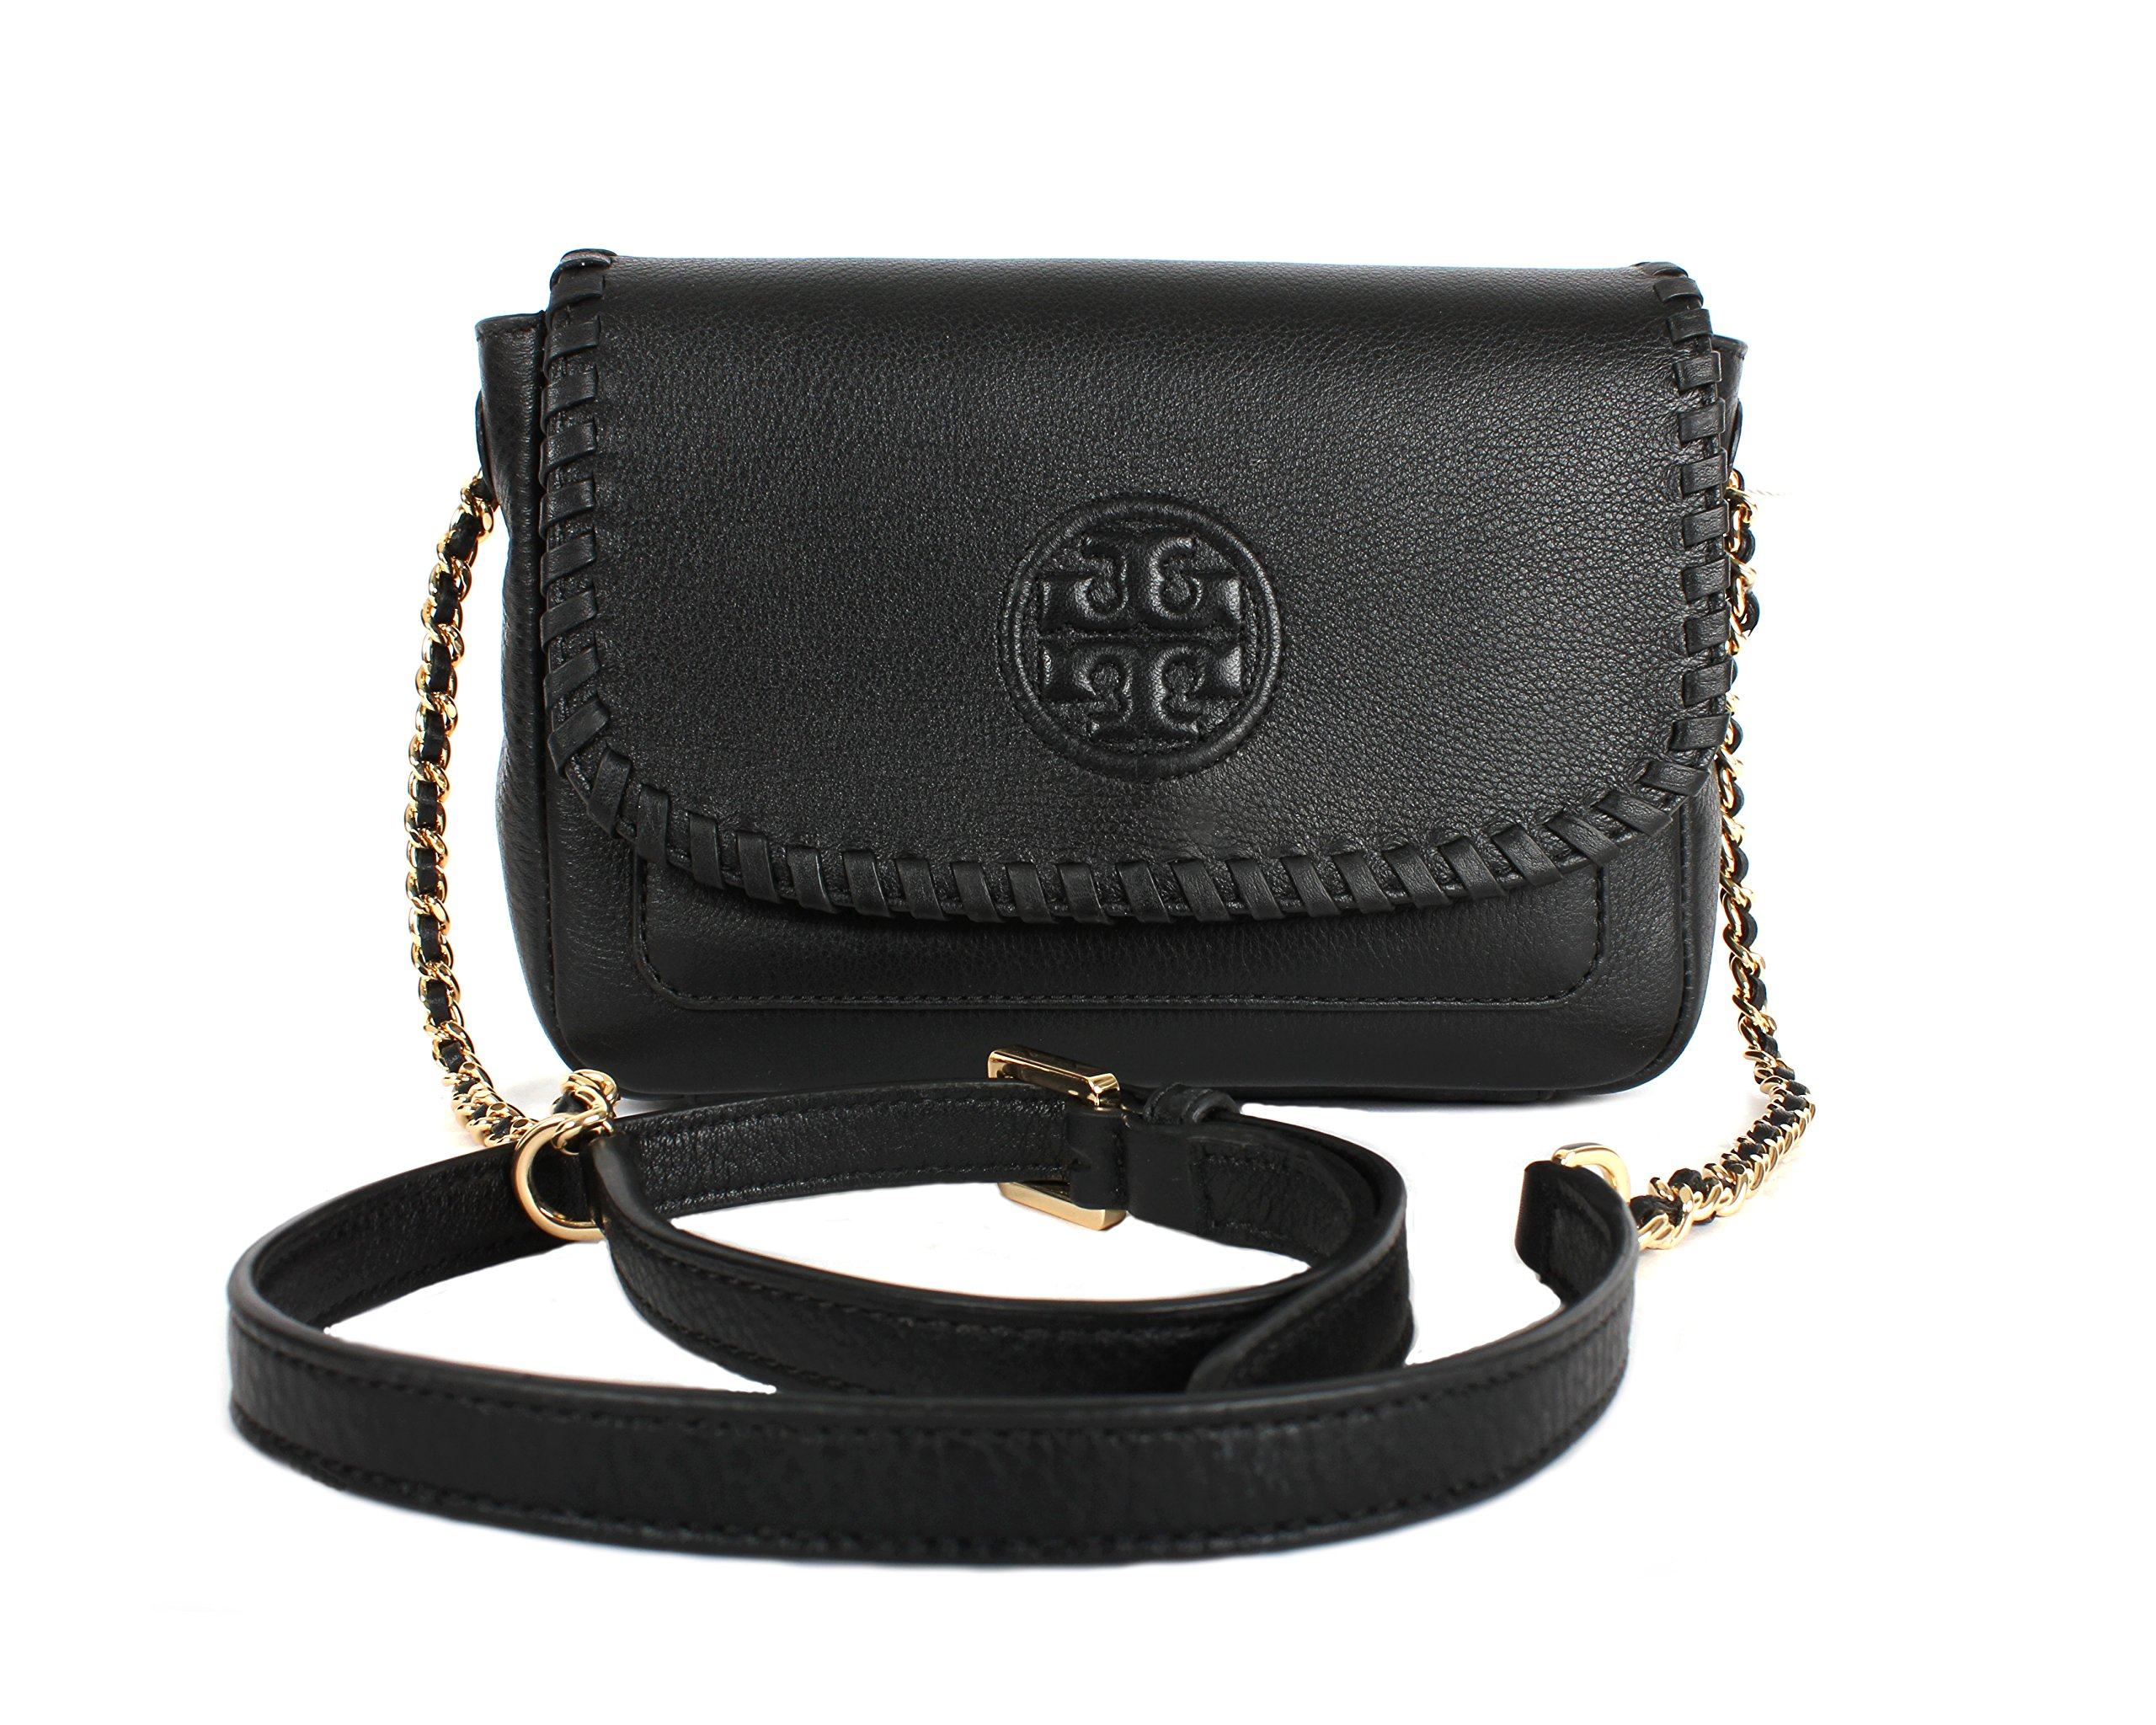 Tory Burch Marion Mini Bag, Black, Style No. 40804